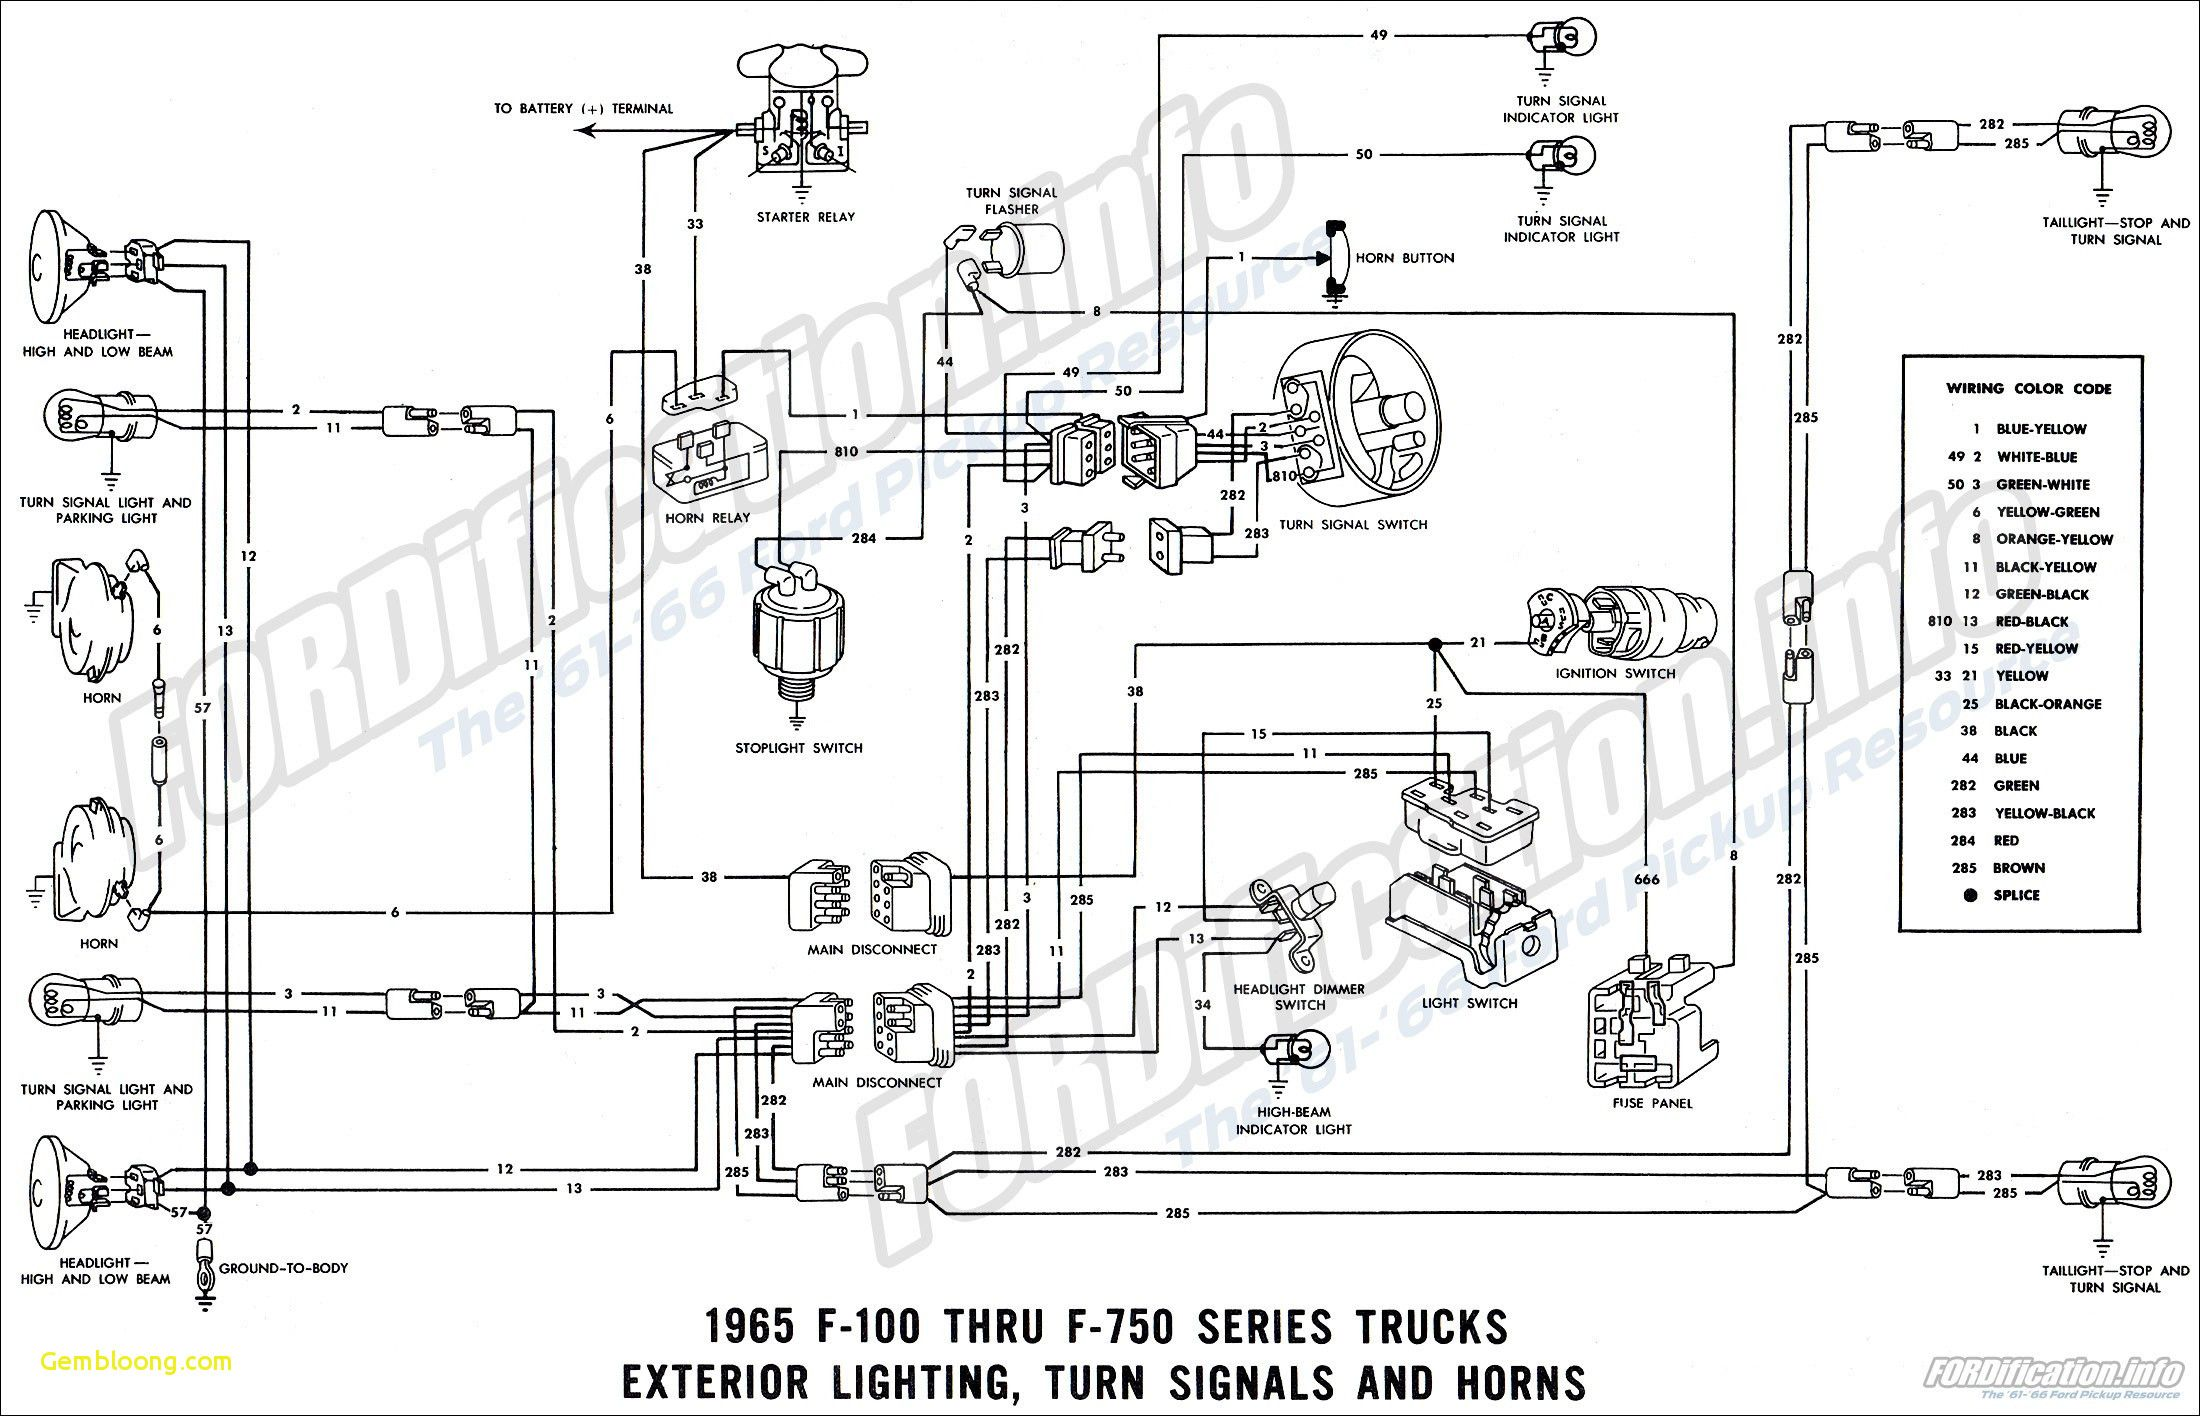 1971 ford f250 wiring diagram 1965 ford wiring schematic e2 wiring diagram  1965 ford wiring schematic e2 wiring